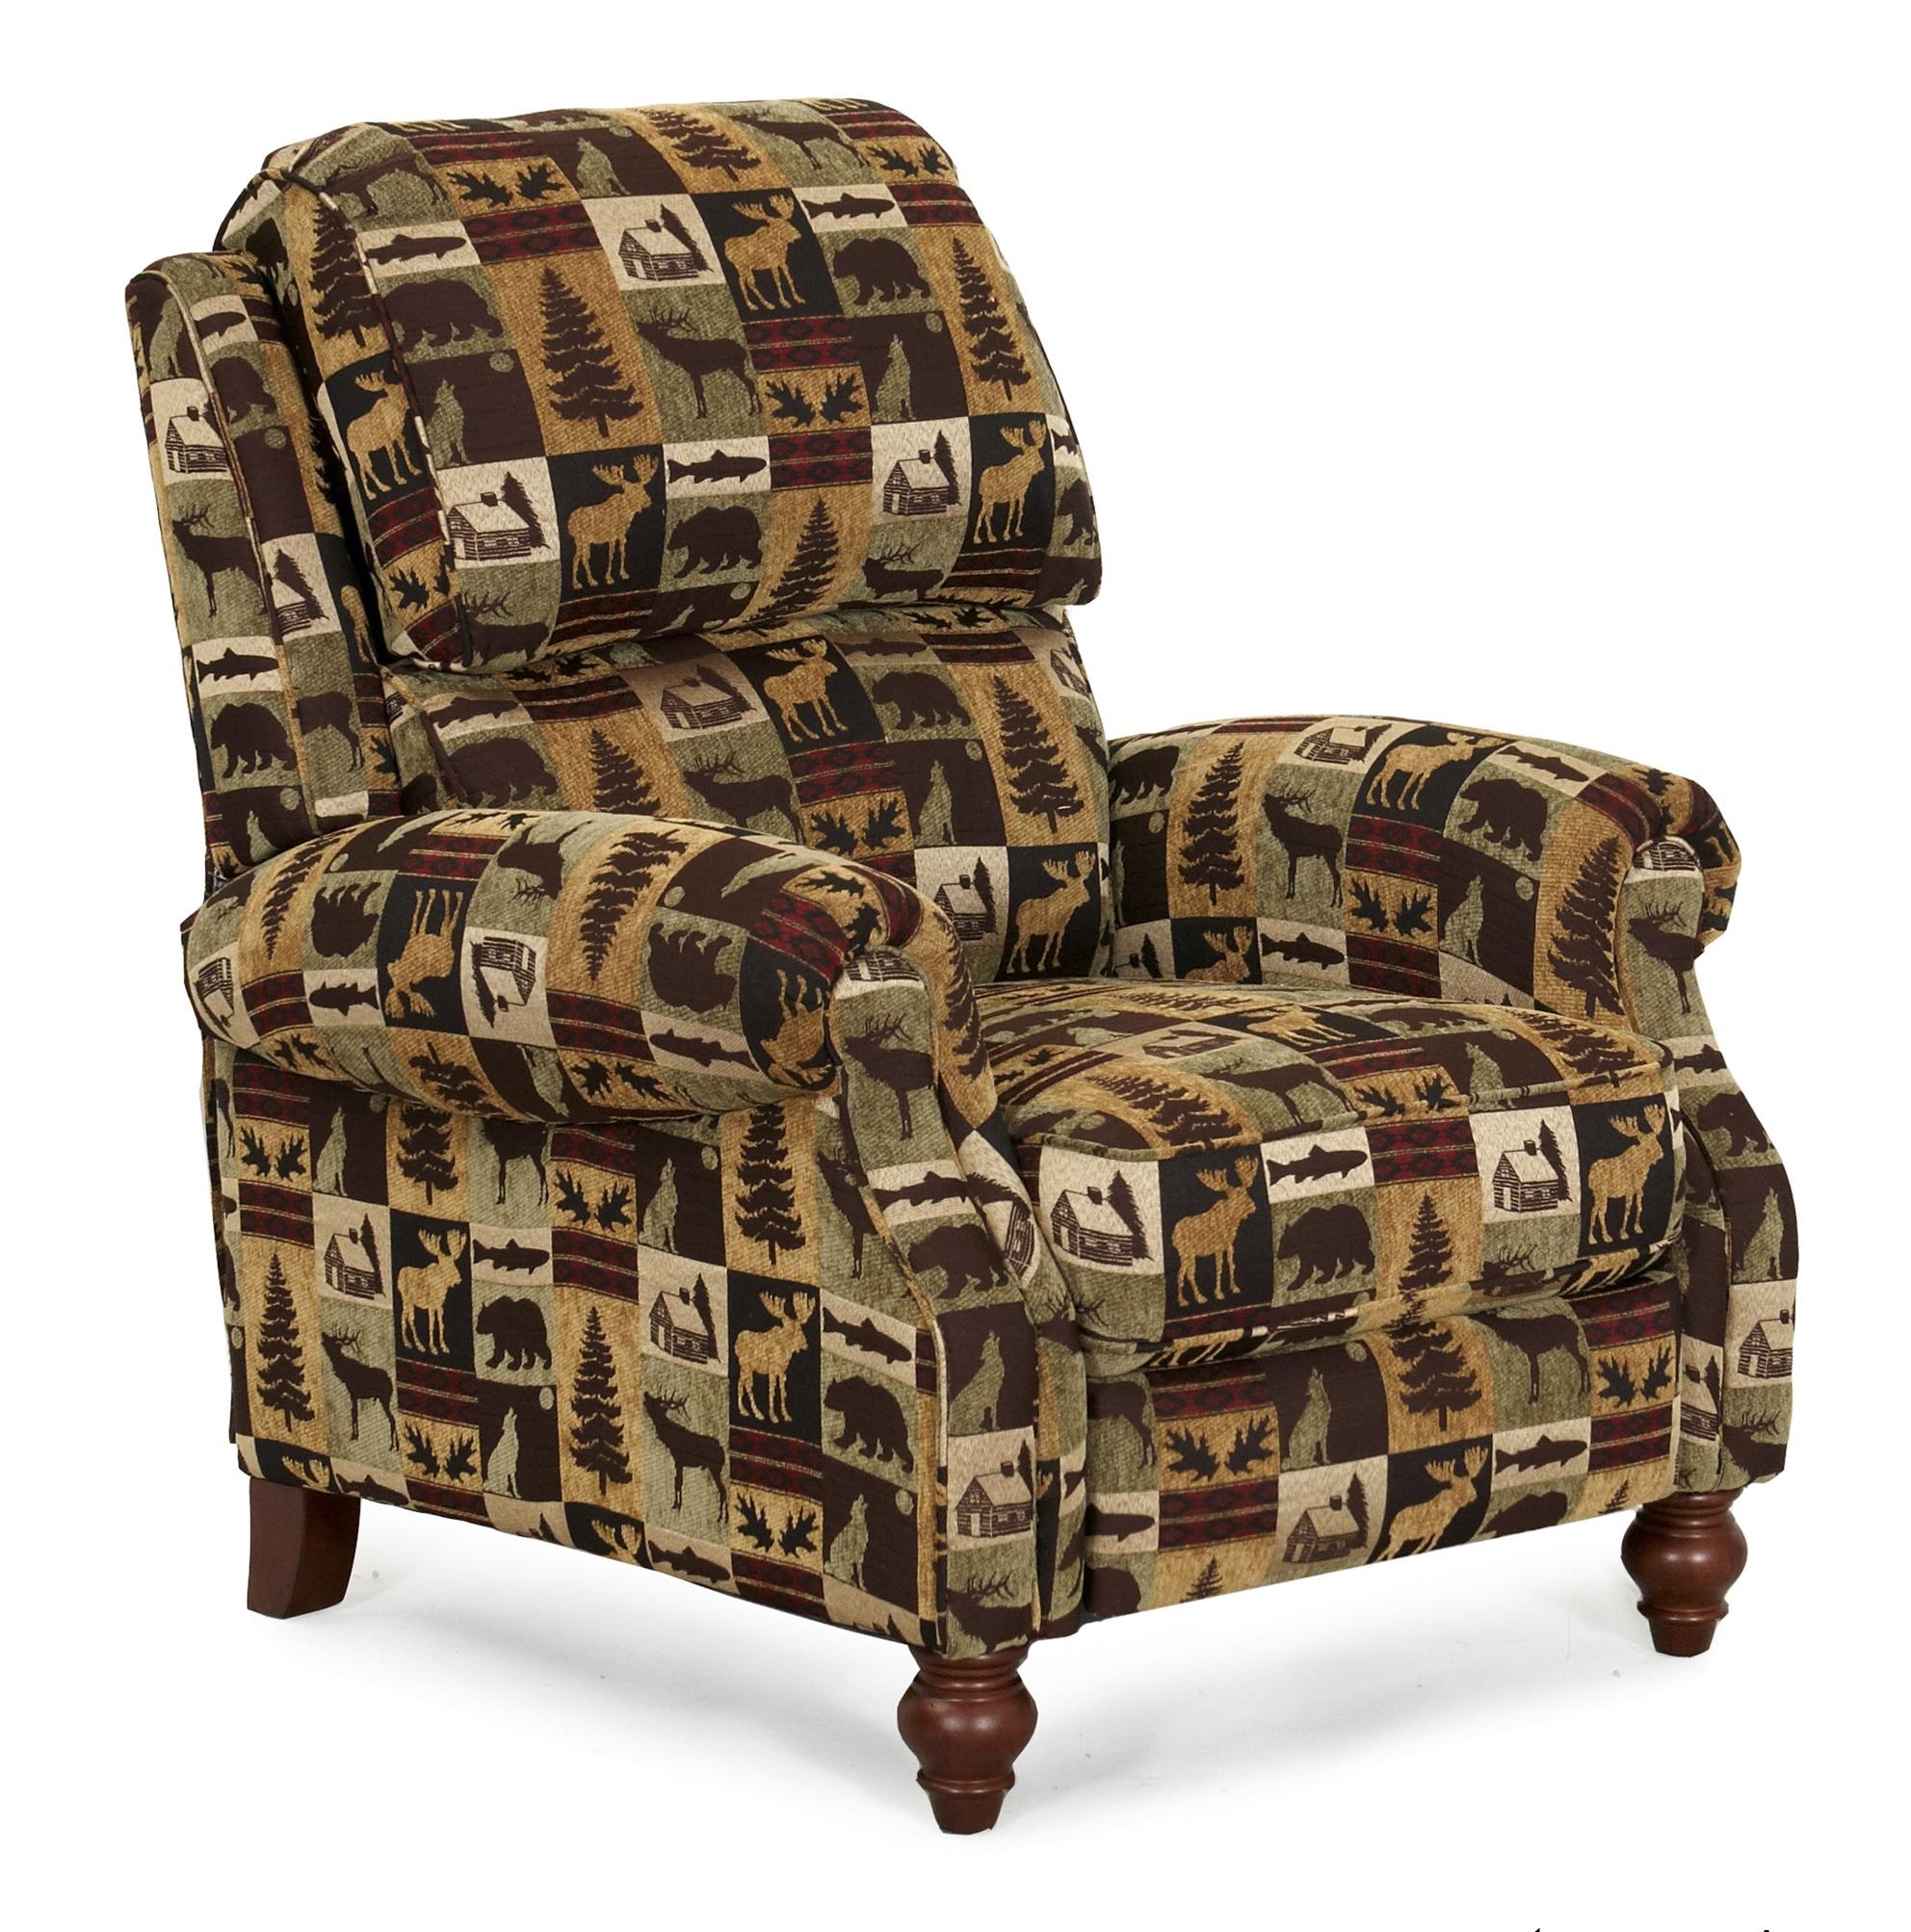 Synergy Home Furnishings 1033 Casual Three Way Recliner with Push Thru Arms  sc 1 st  Zak\u0027s Fine Furniture & Synergy Home Furnishings 1033 Casual Three Way Recliner with Push ...